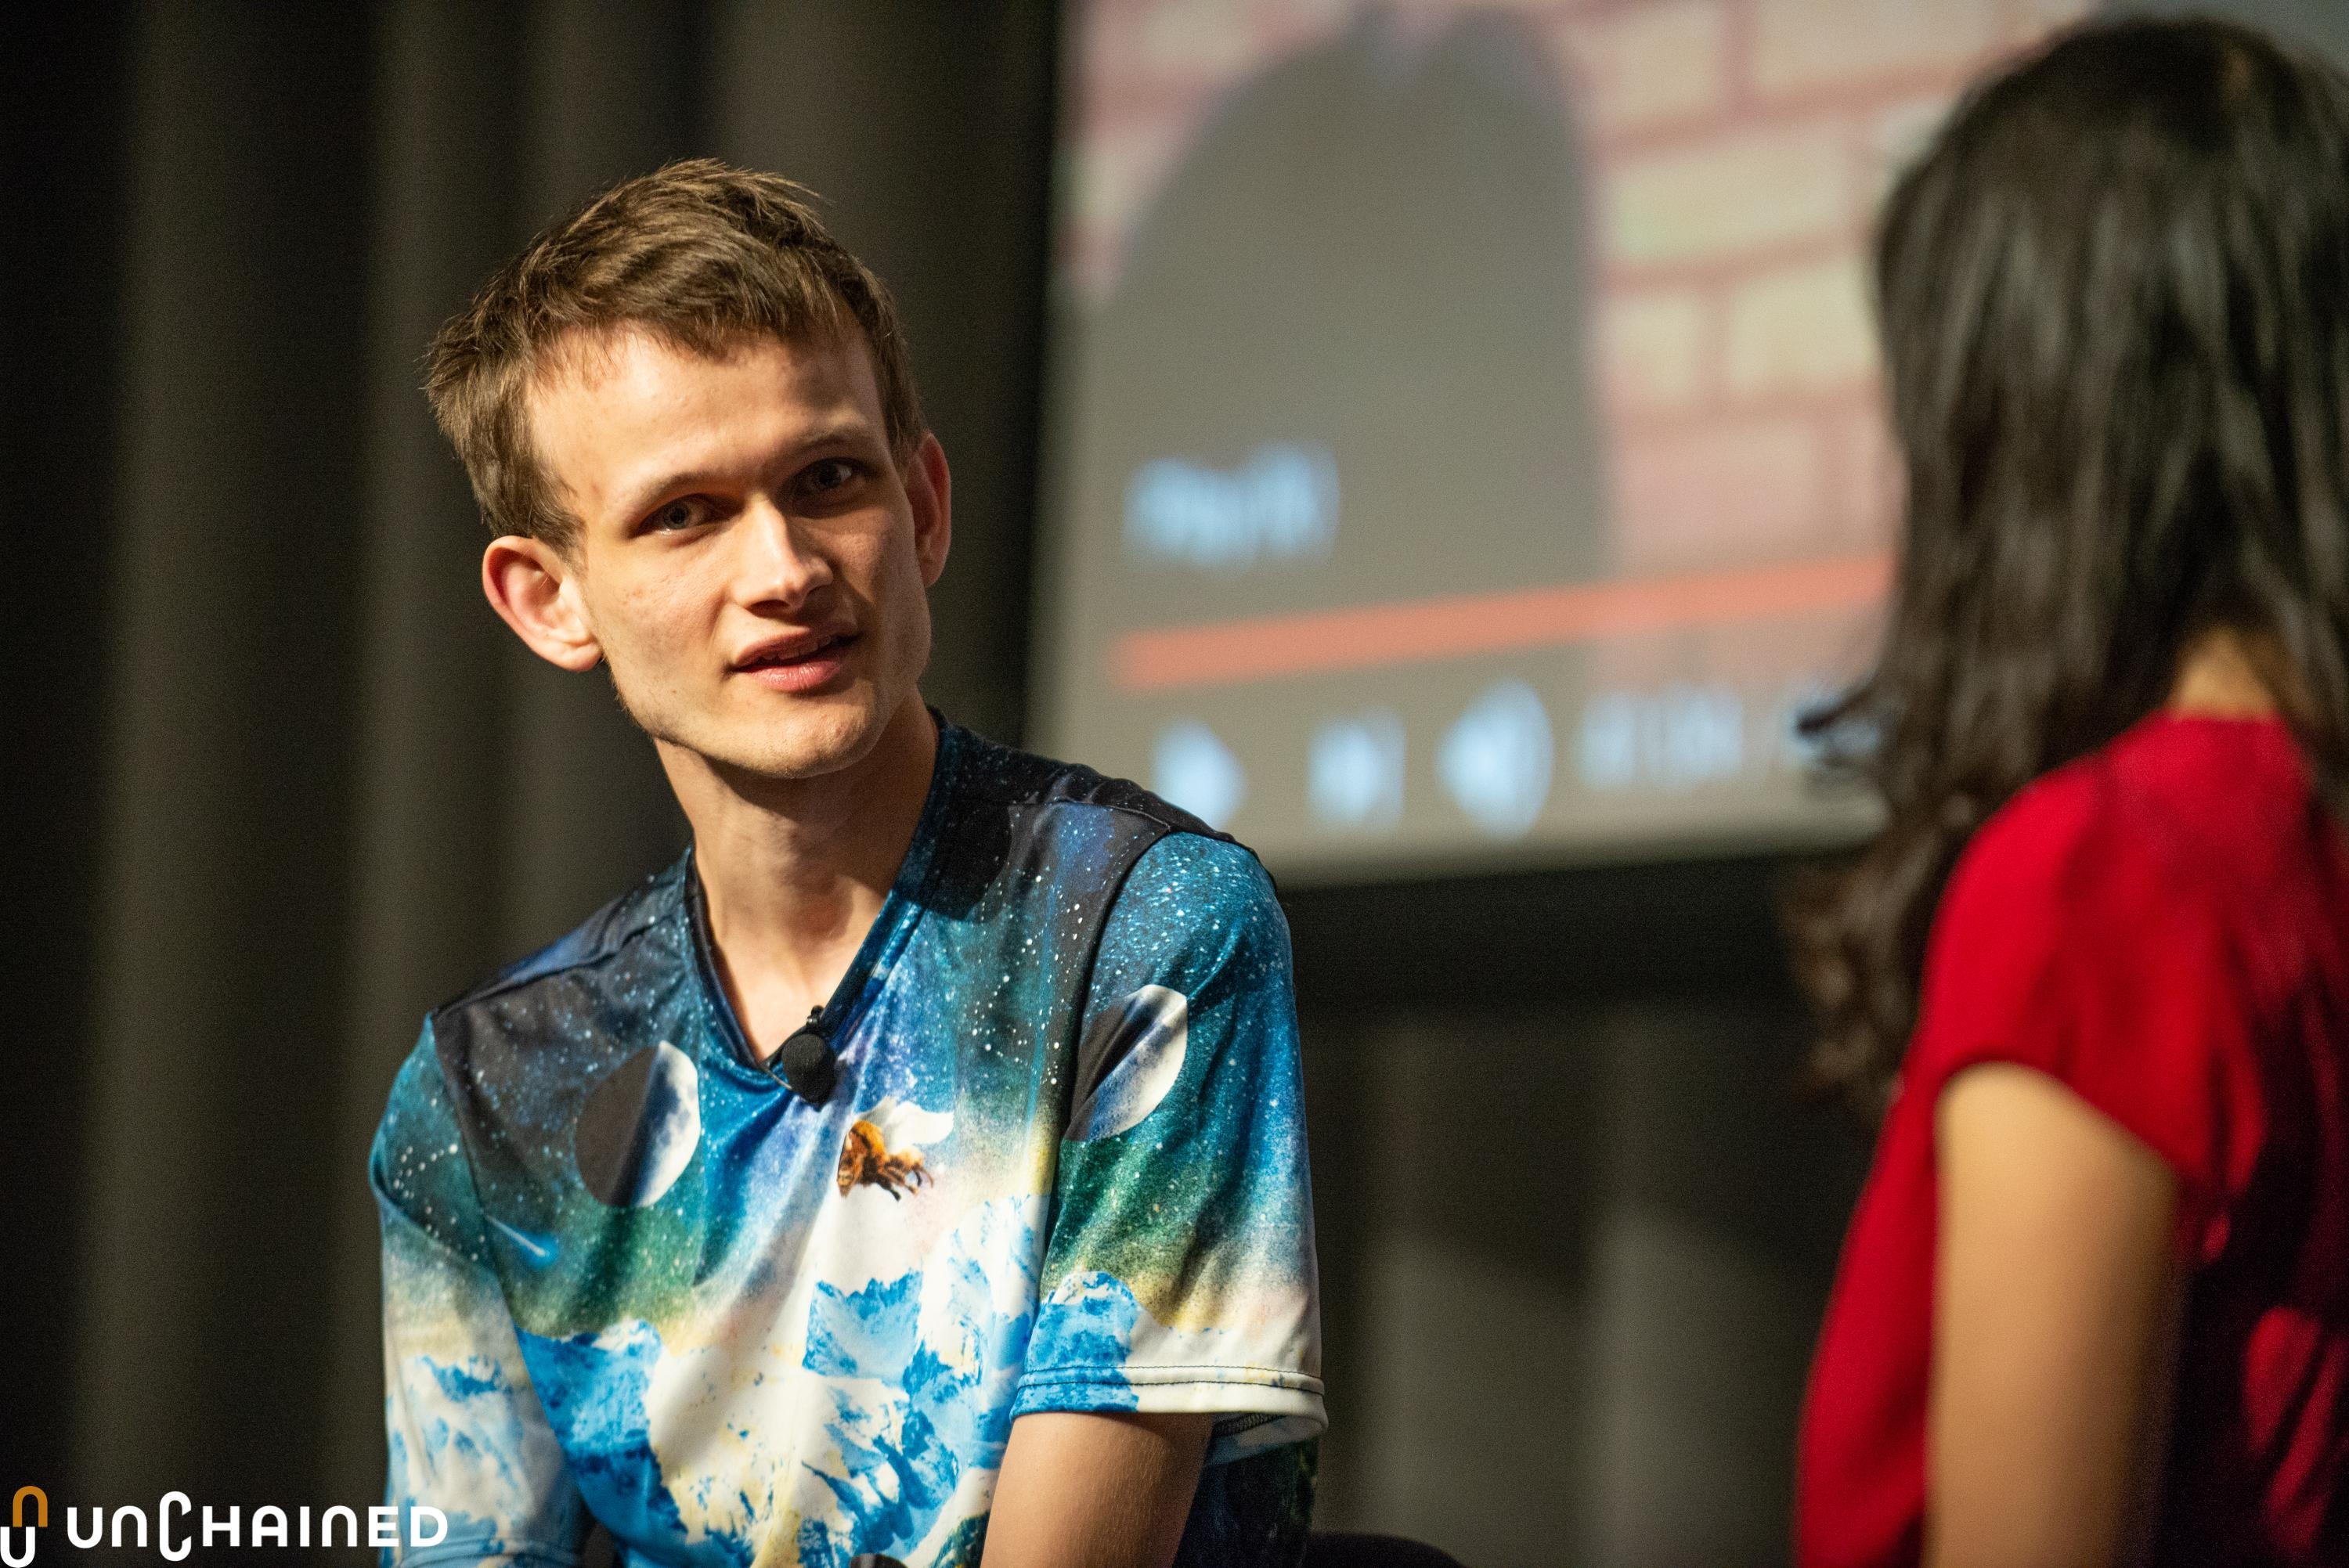 Vitalik Buterin on Why Ethereum Has Lost Some of Its Lead​